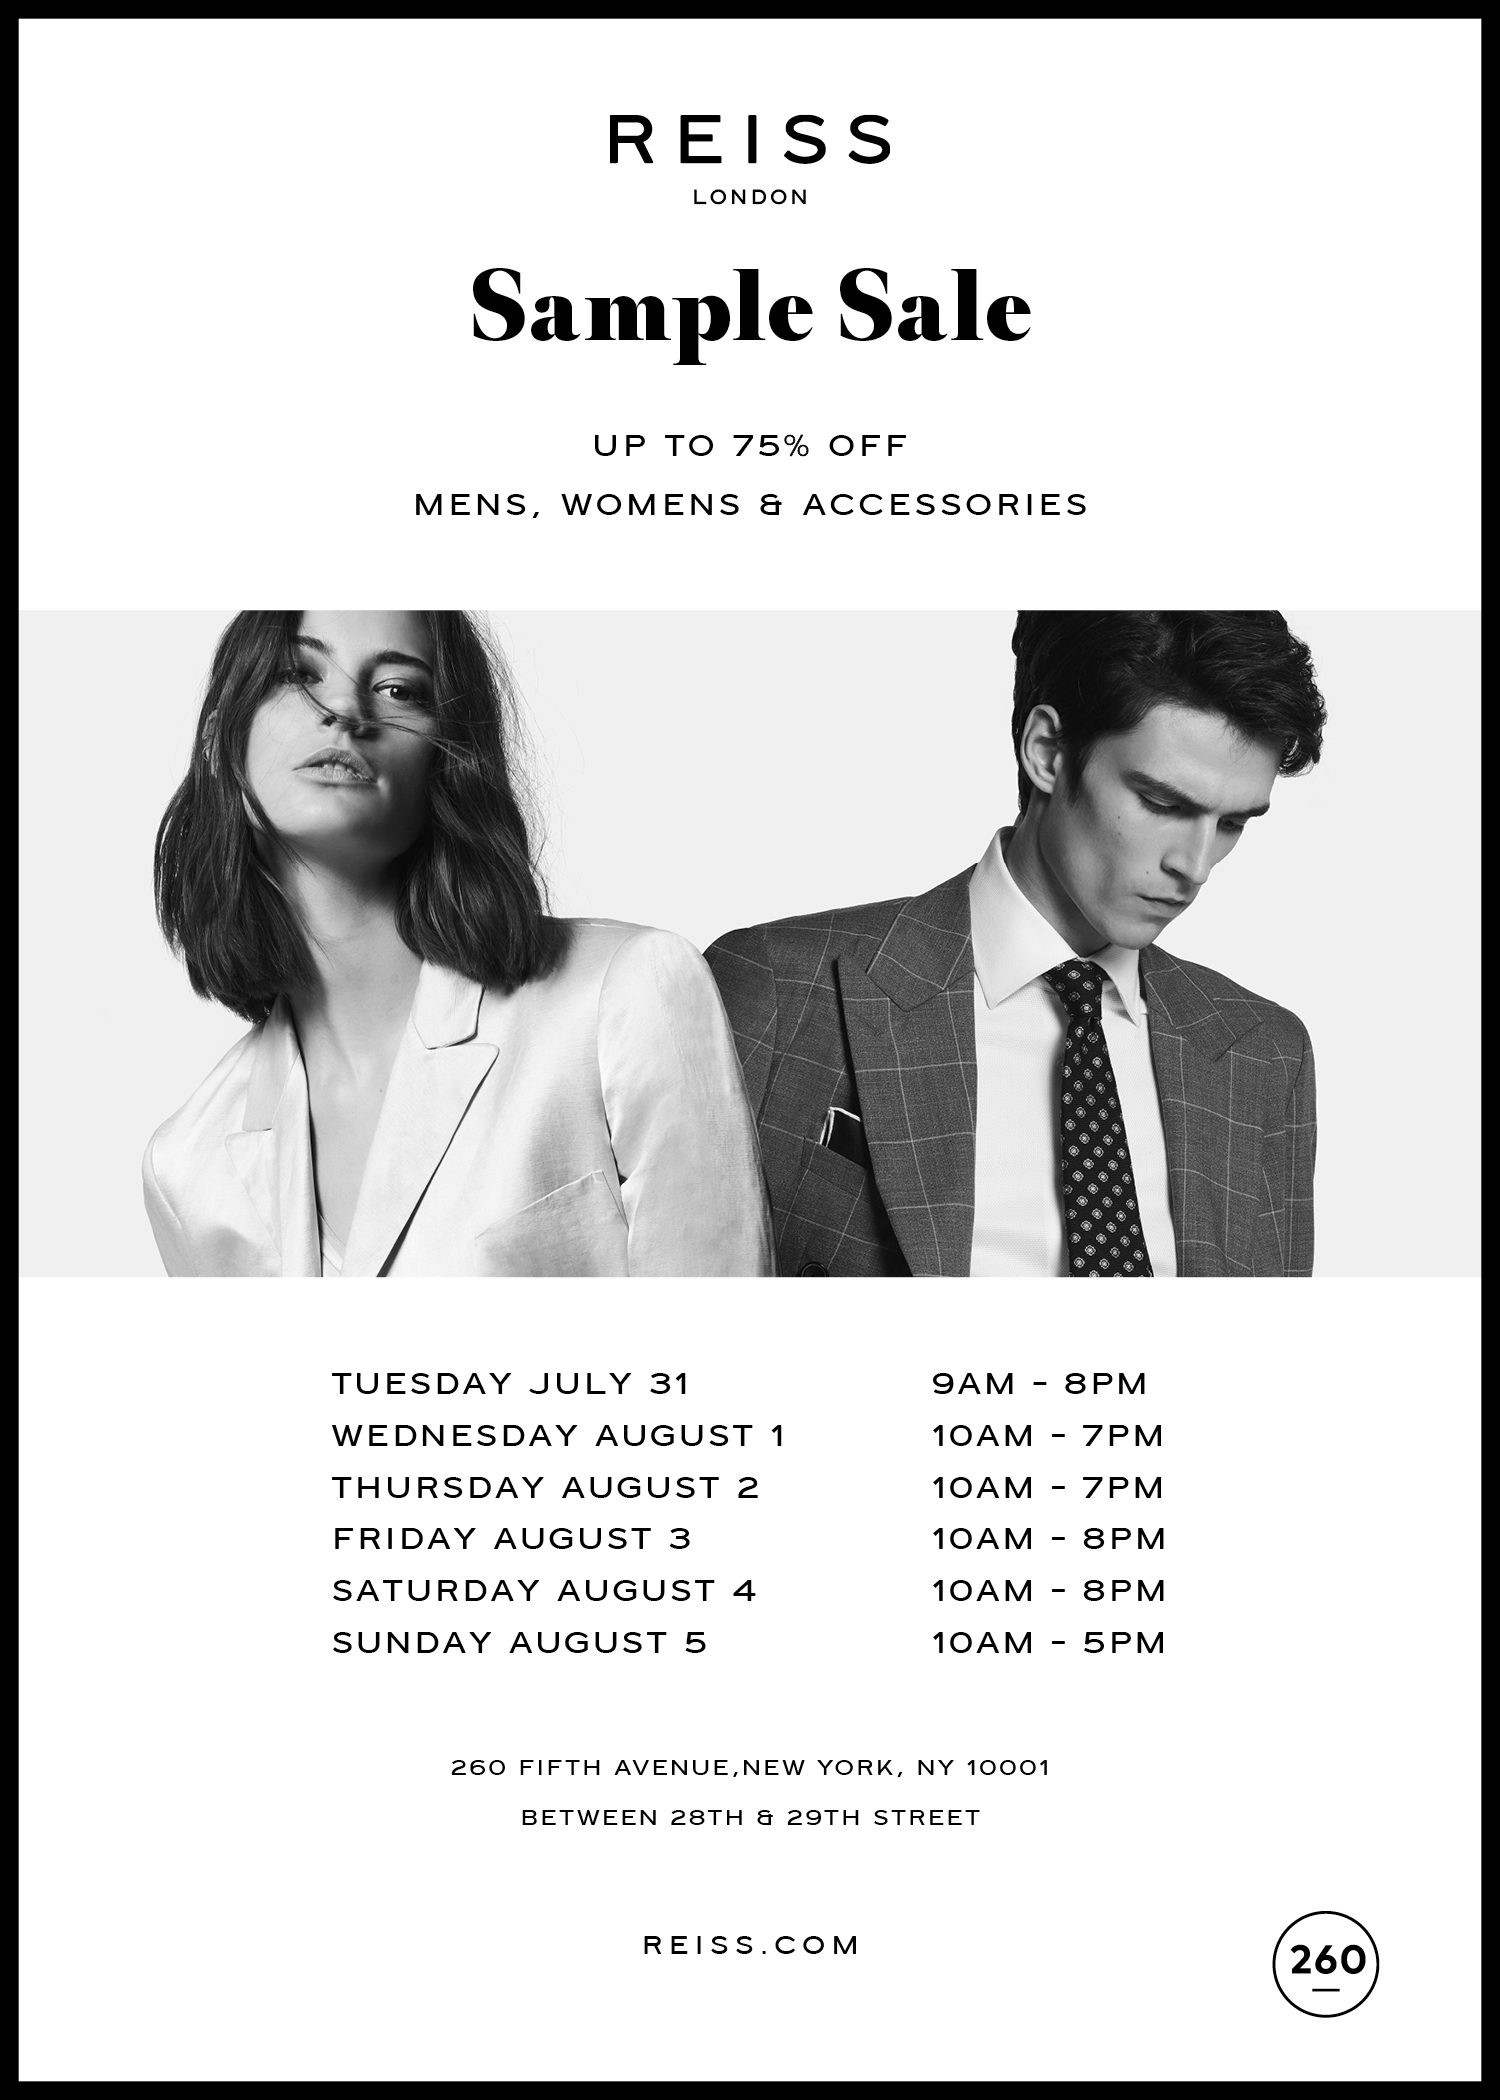 Reiss Sample Sale E-vite.jpg